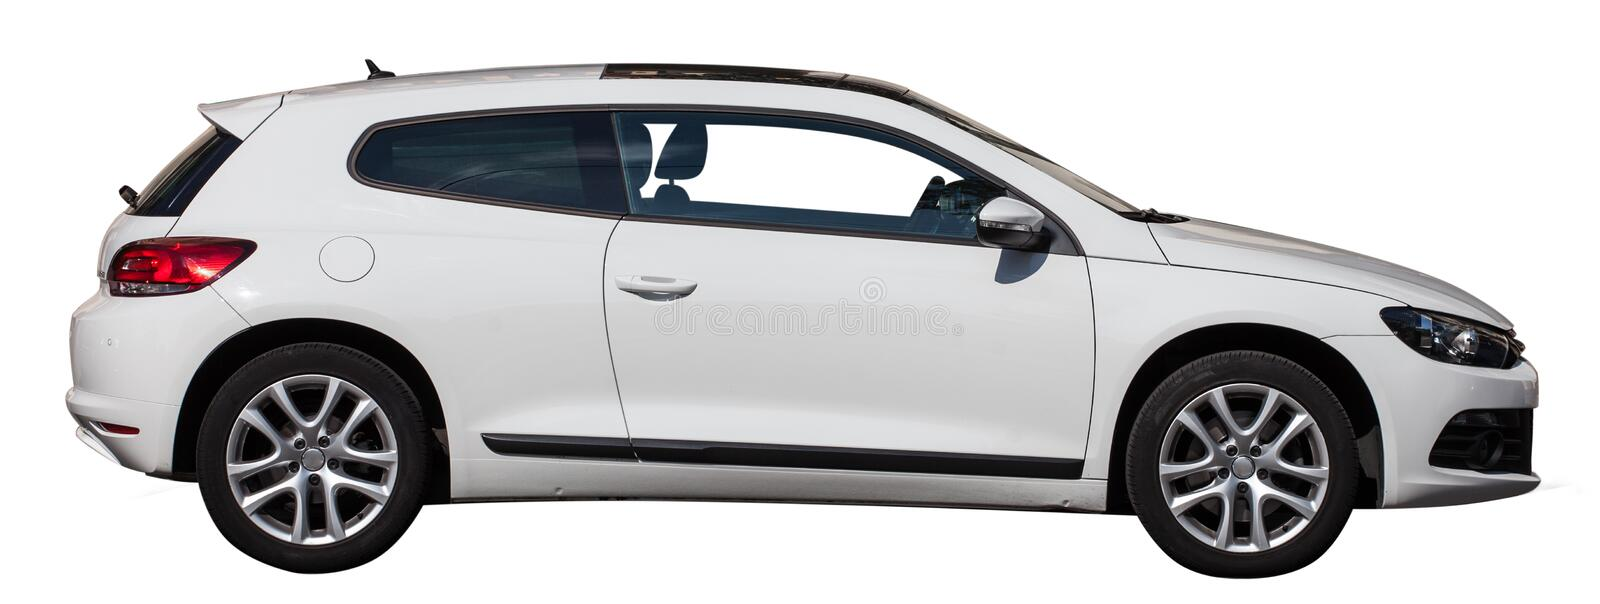 White VW scirocco on a transparent background. White car on a transparent background. Car from the background. White car on a white background. sport car stock photography